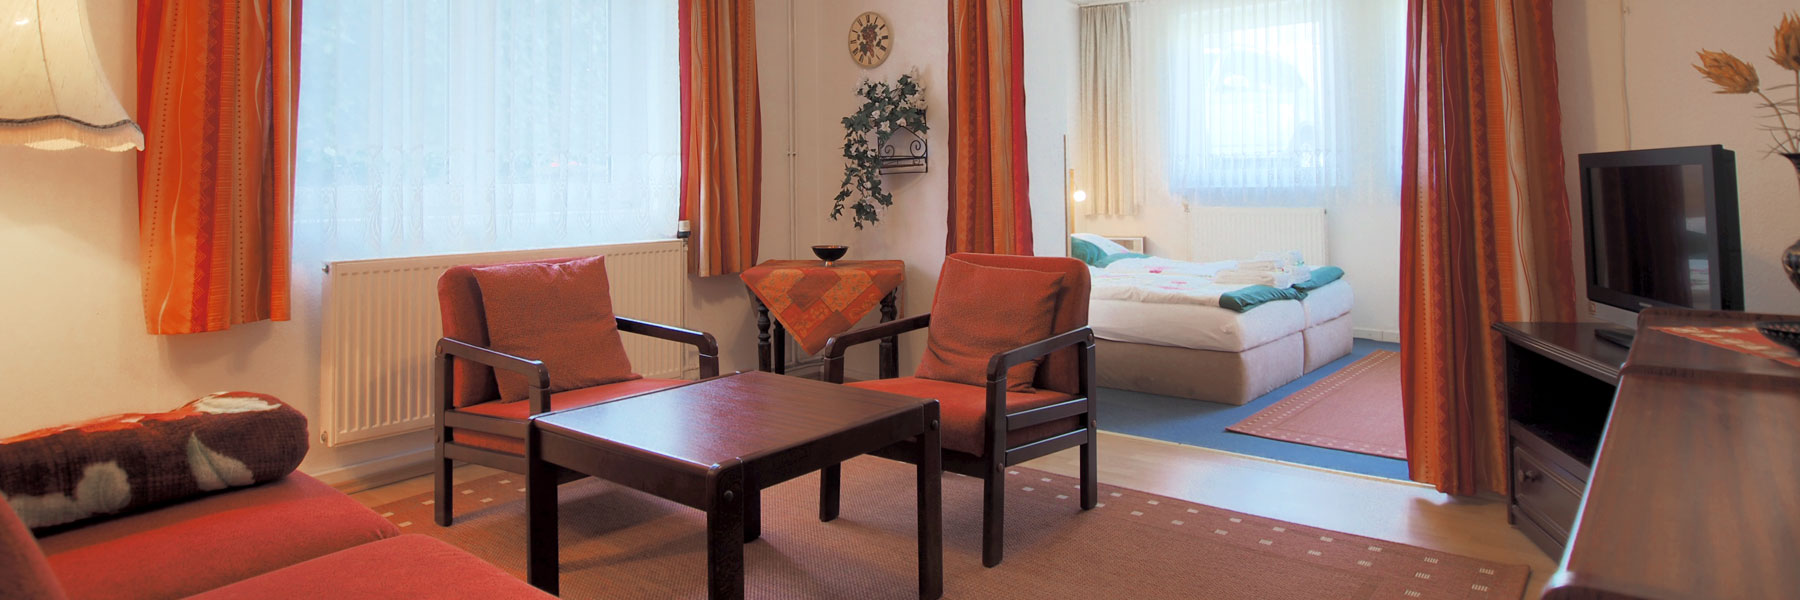 Appartement - Pensionszimmer Nordstern